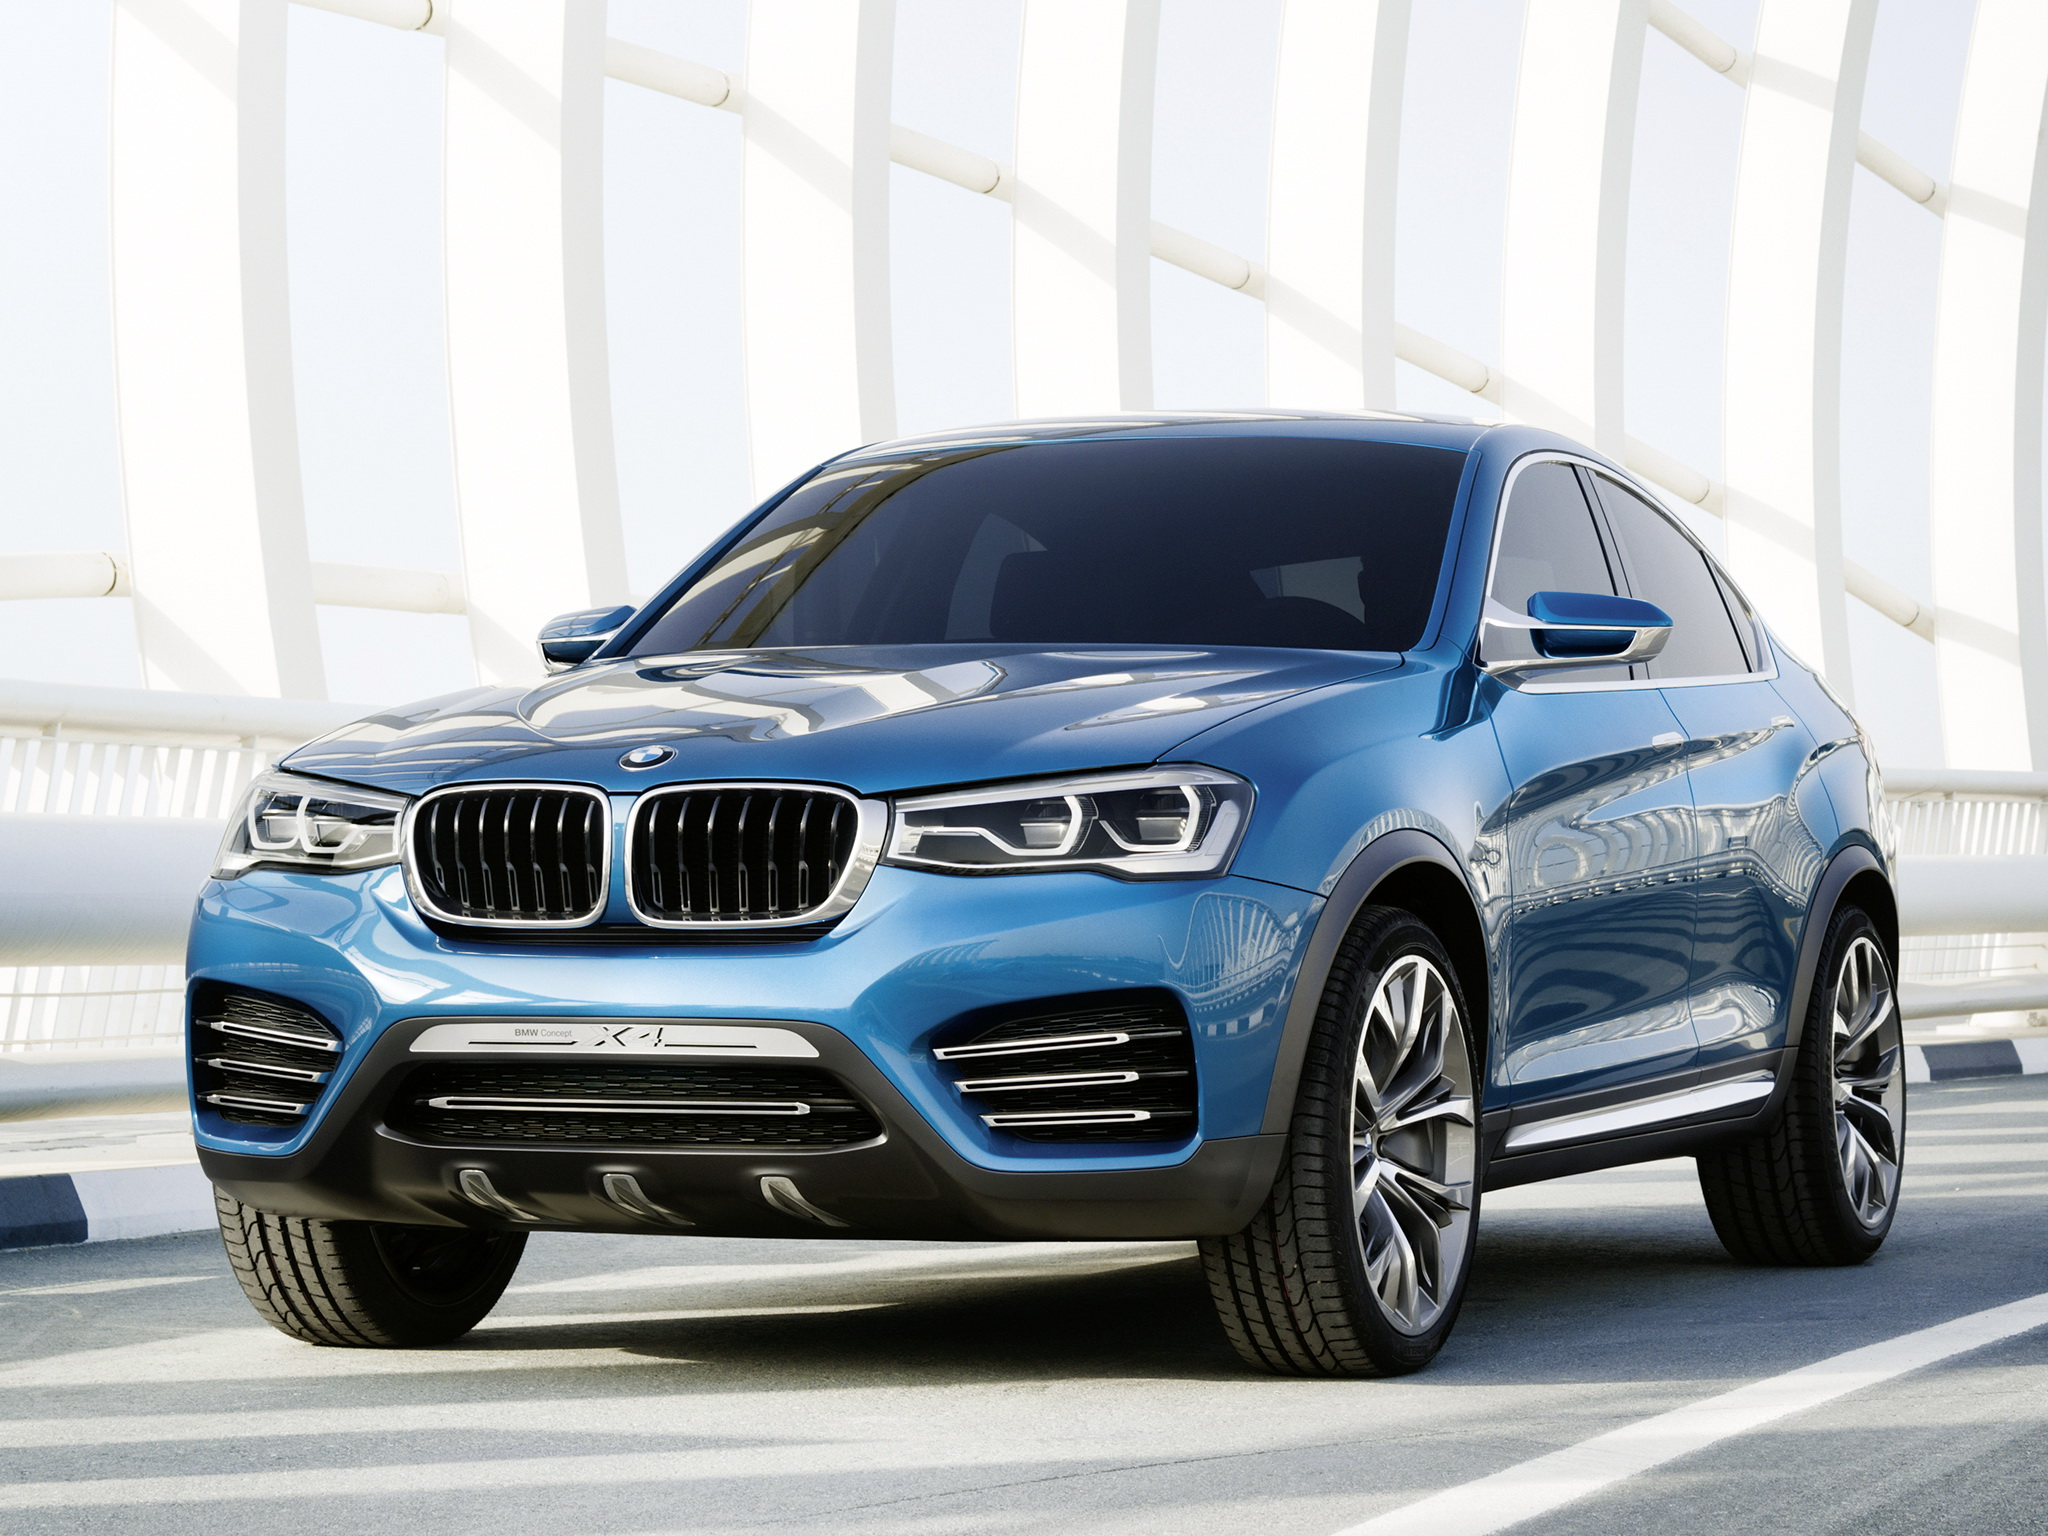 bmw x4 picture 100363 bmw photo gallery. Black Bedroom Furniture Sets. Home Design Ideas